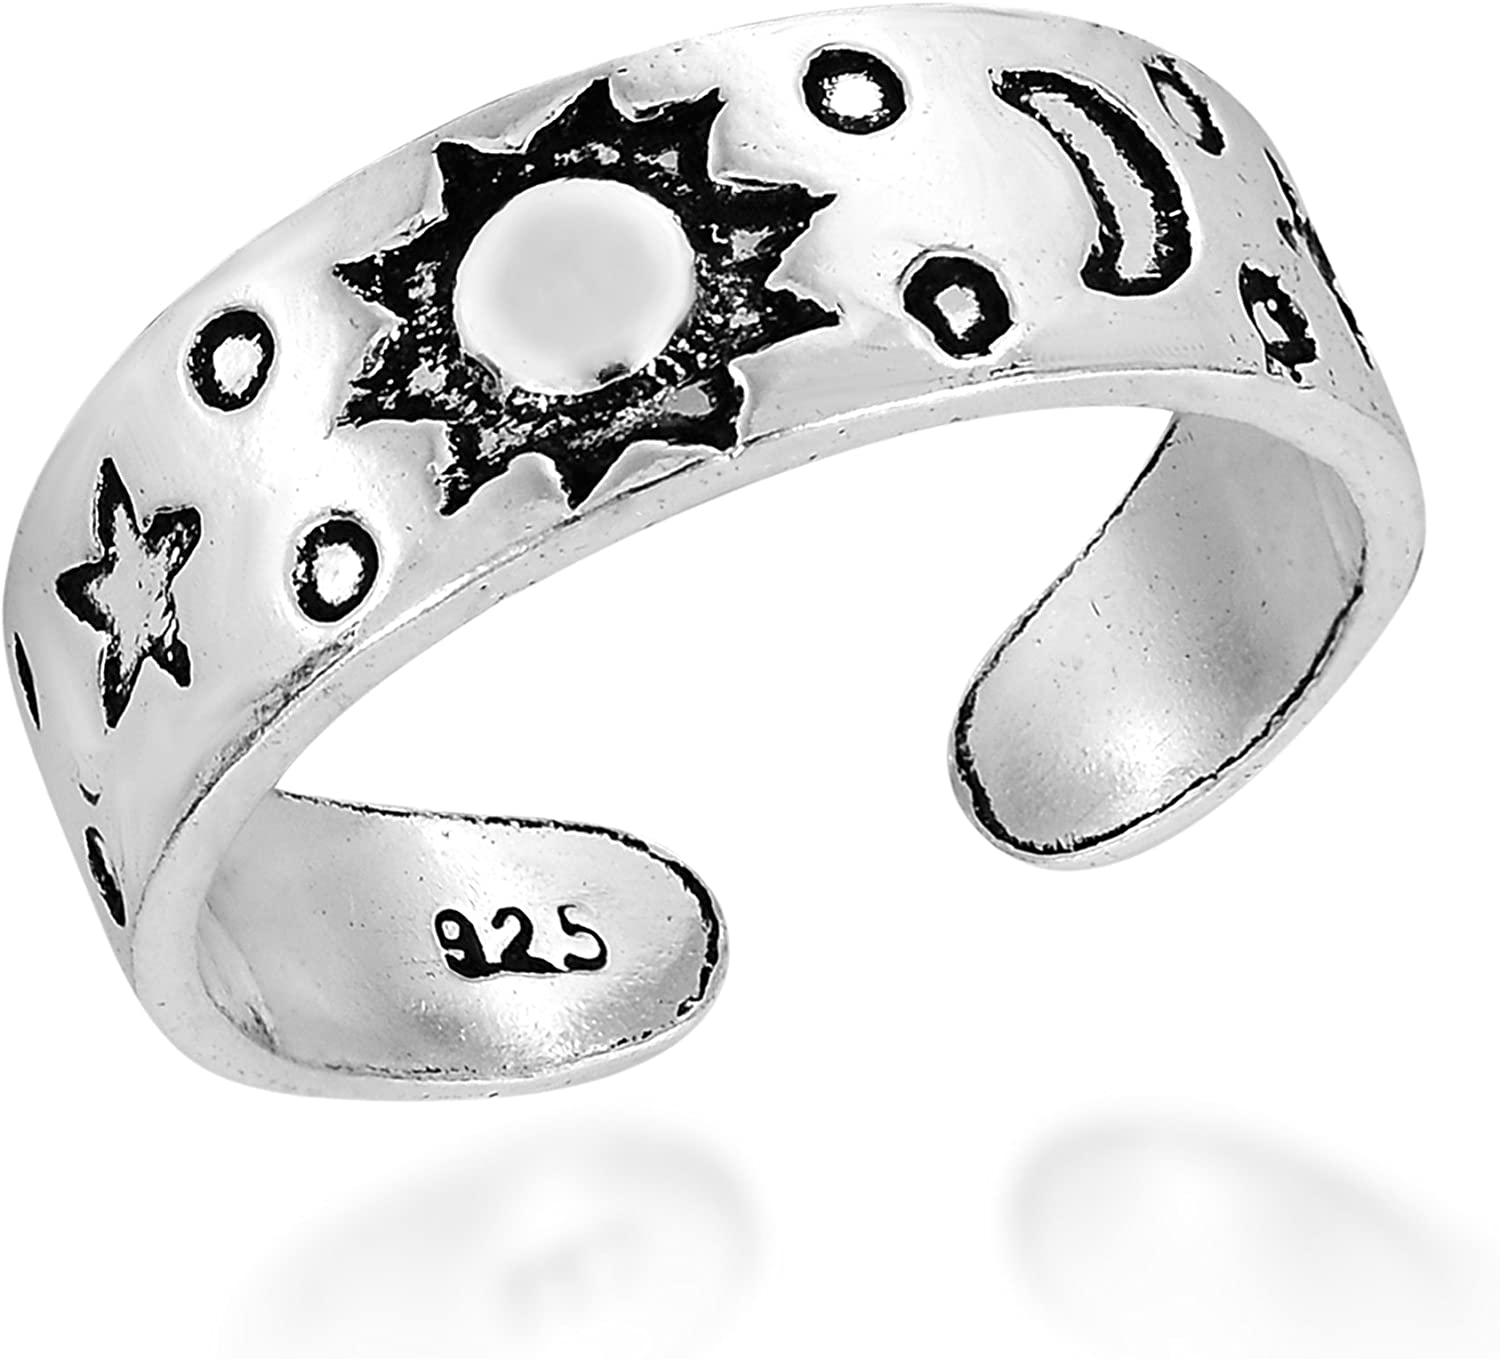 AeraVida Celestial Sky Sun Moon and Star .925 Sterling Silver Toe Ring or Pinky Ring